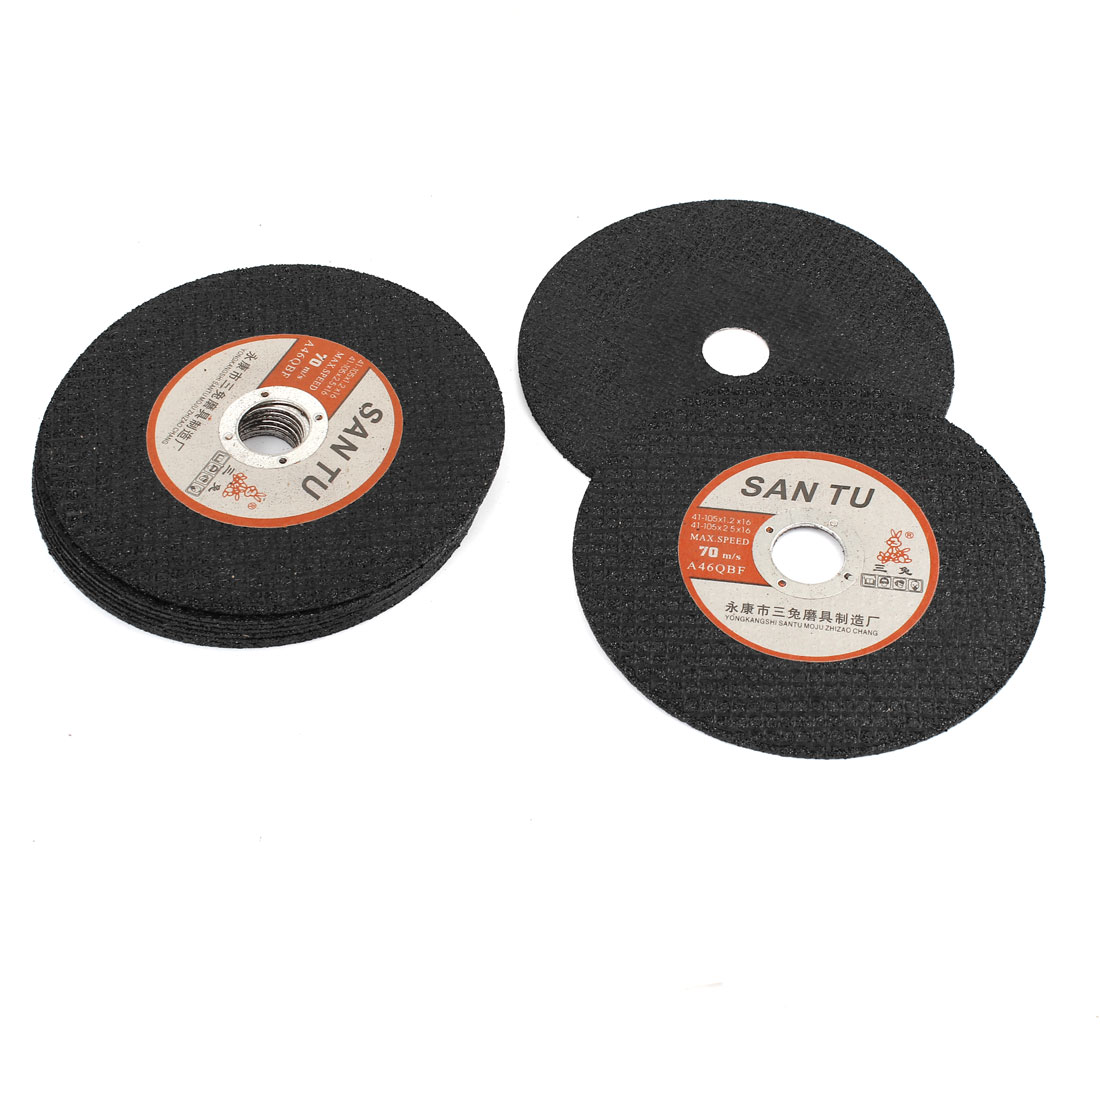 10 Pcs Black 105mm Diameter 1mm Thickness Grinding Disc Cut-off Wheel